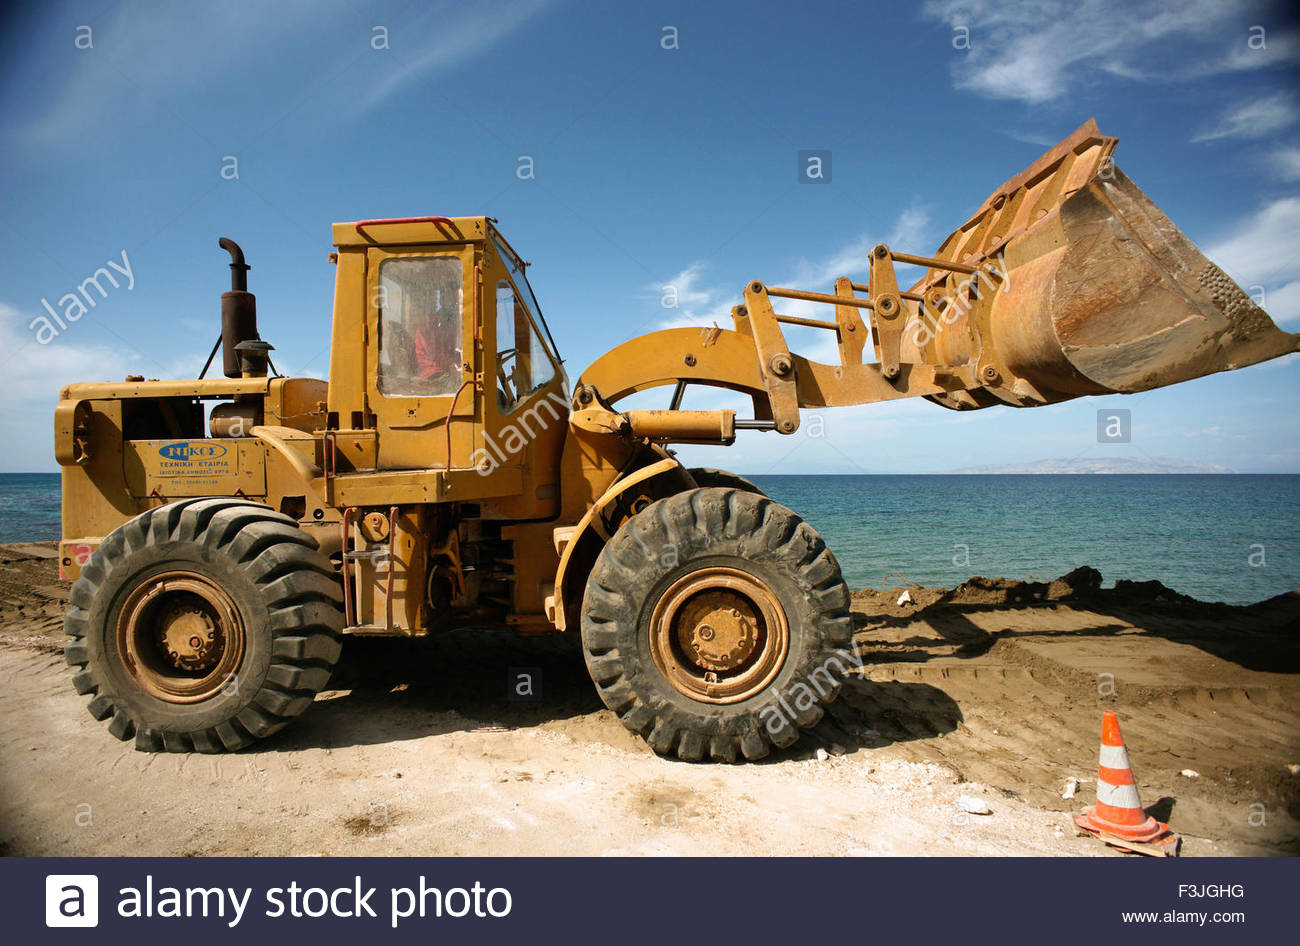 Front End Loader Earth Moving Equipment Greece Europe Stock Photo